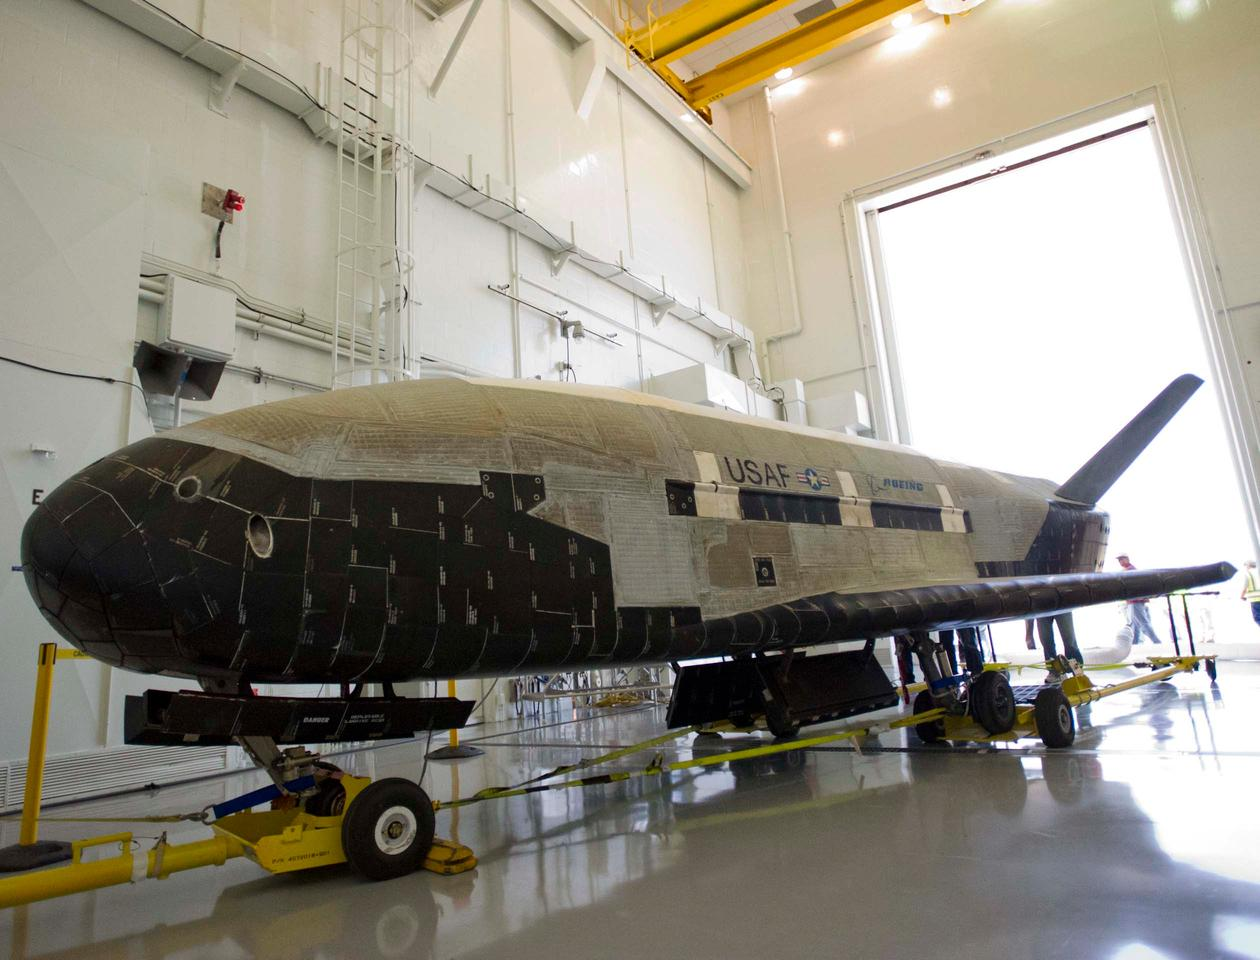 The X-37B features a similar design to the Space Shuttle but is around a quarter of the size of that craft